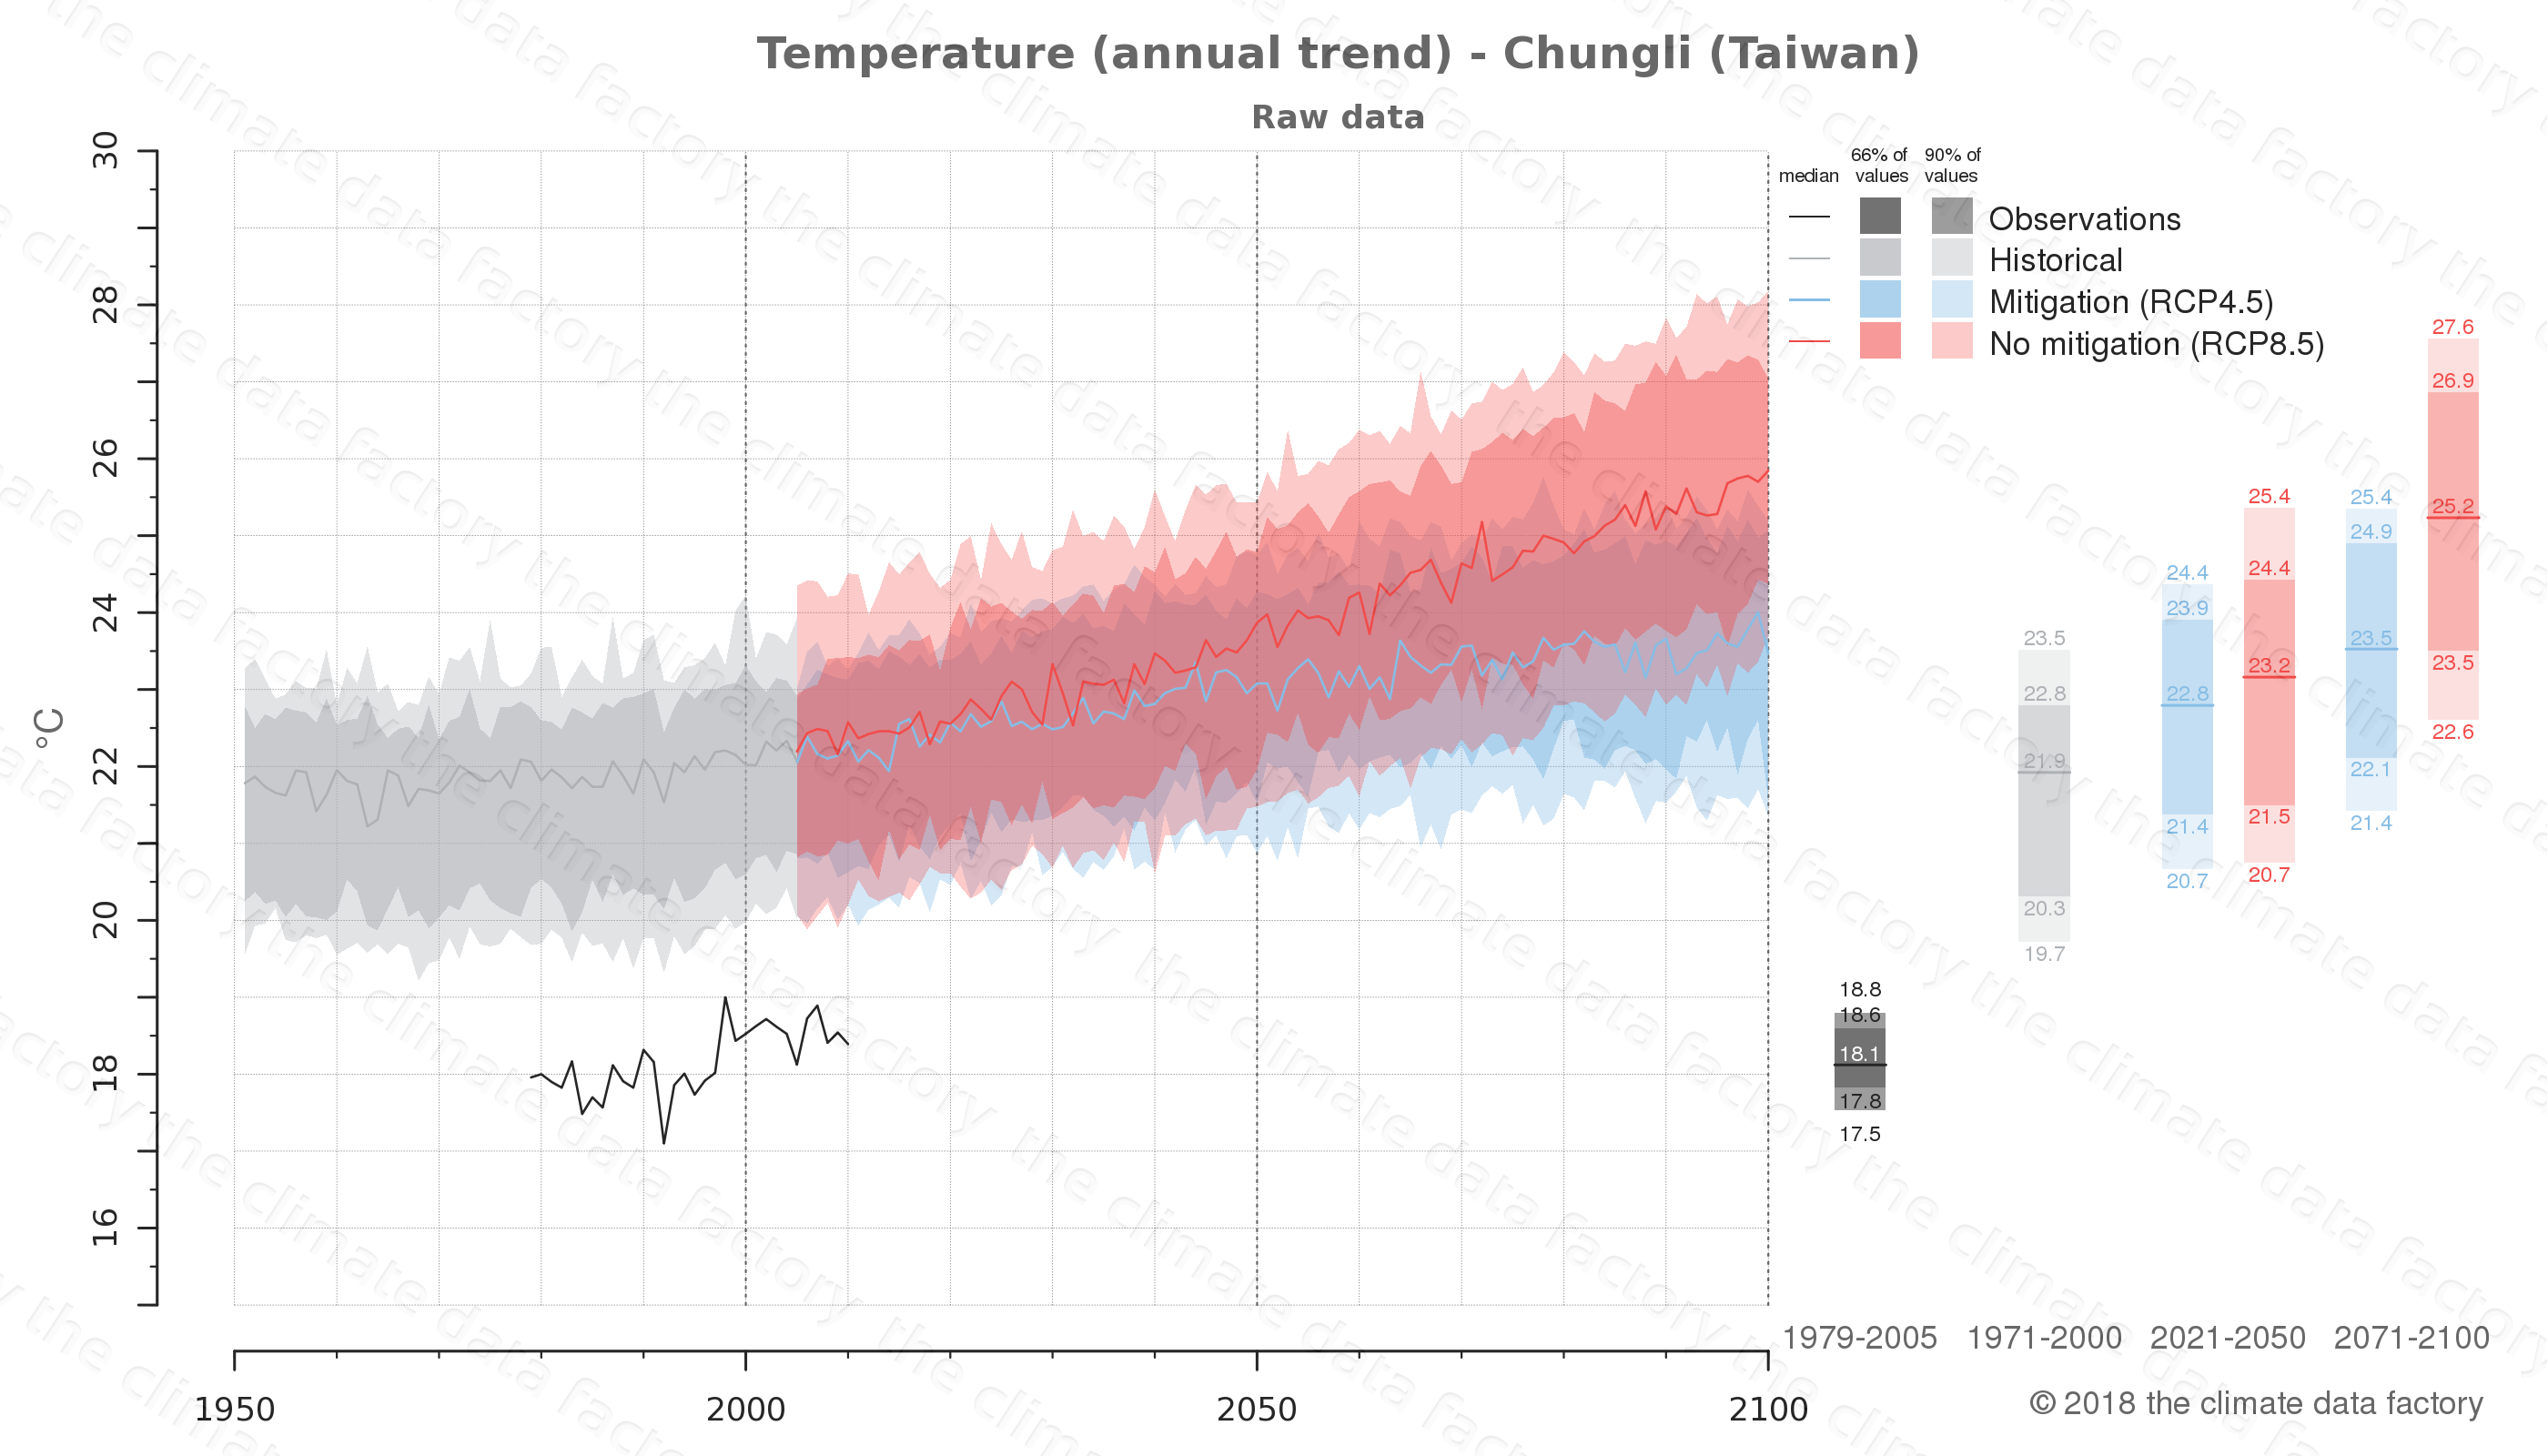 climate change data policy adaptation climate graph city data temperature chungli taiwan